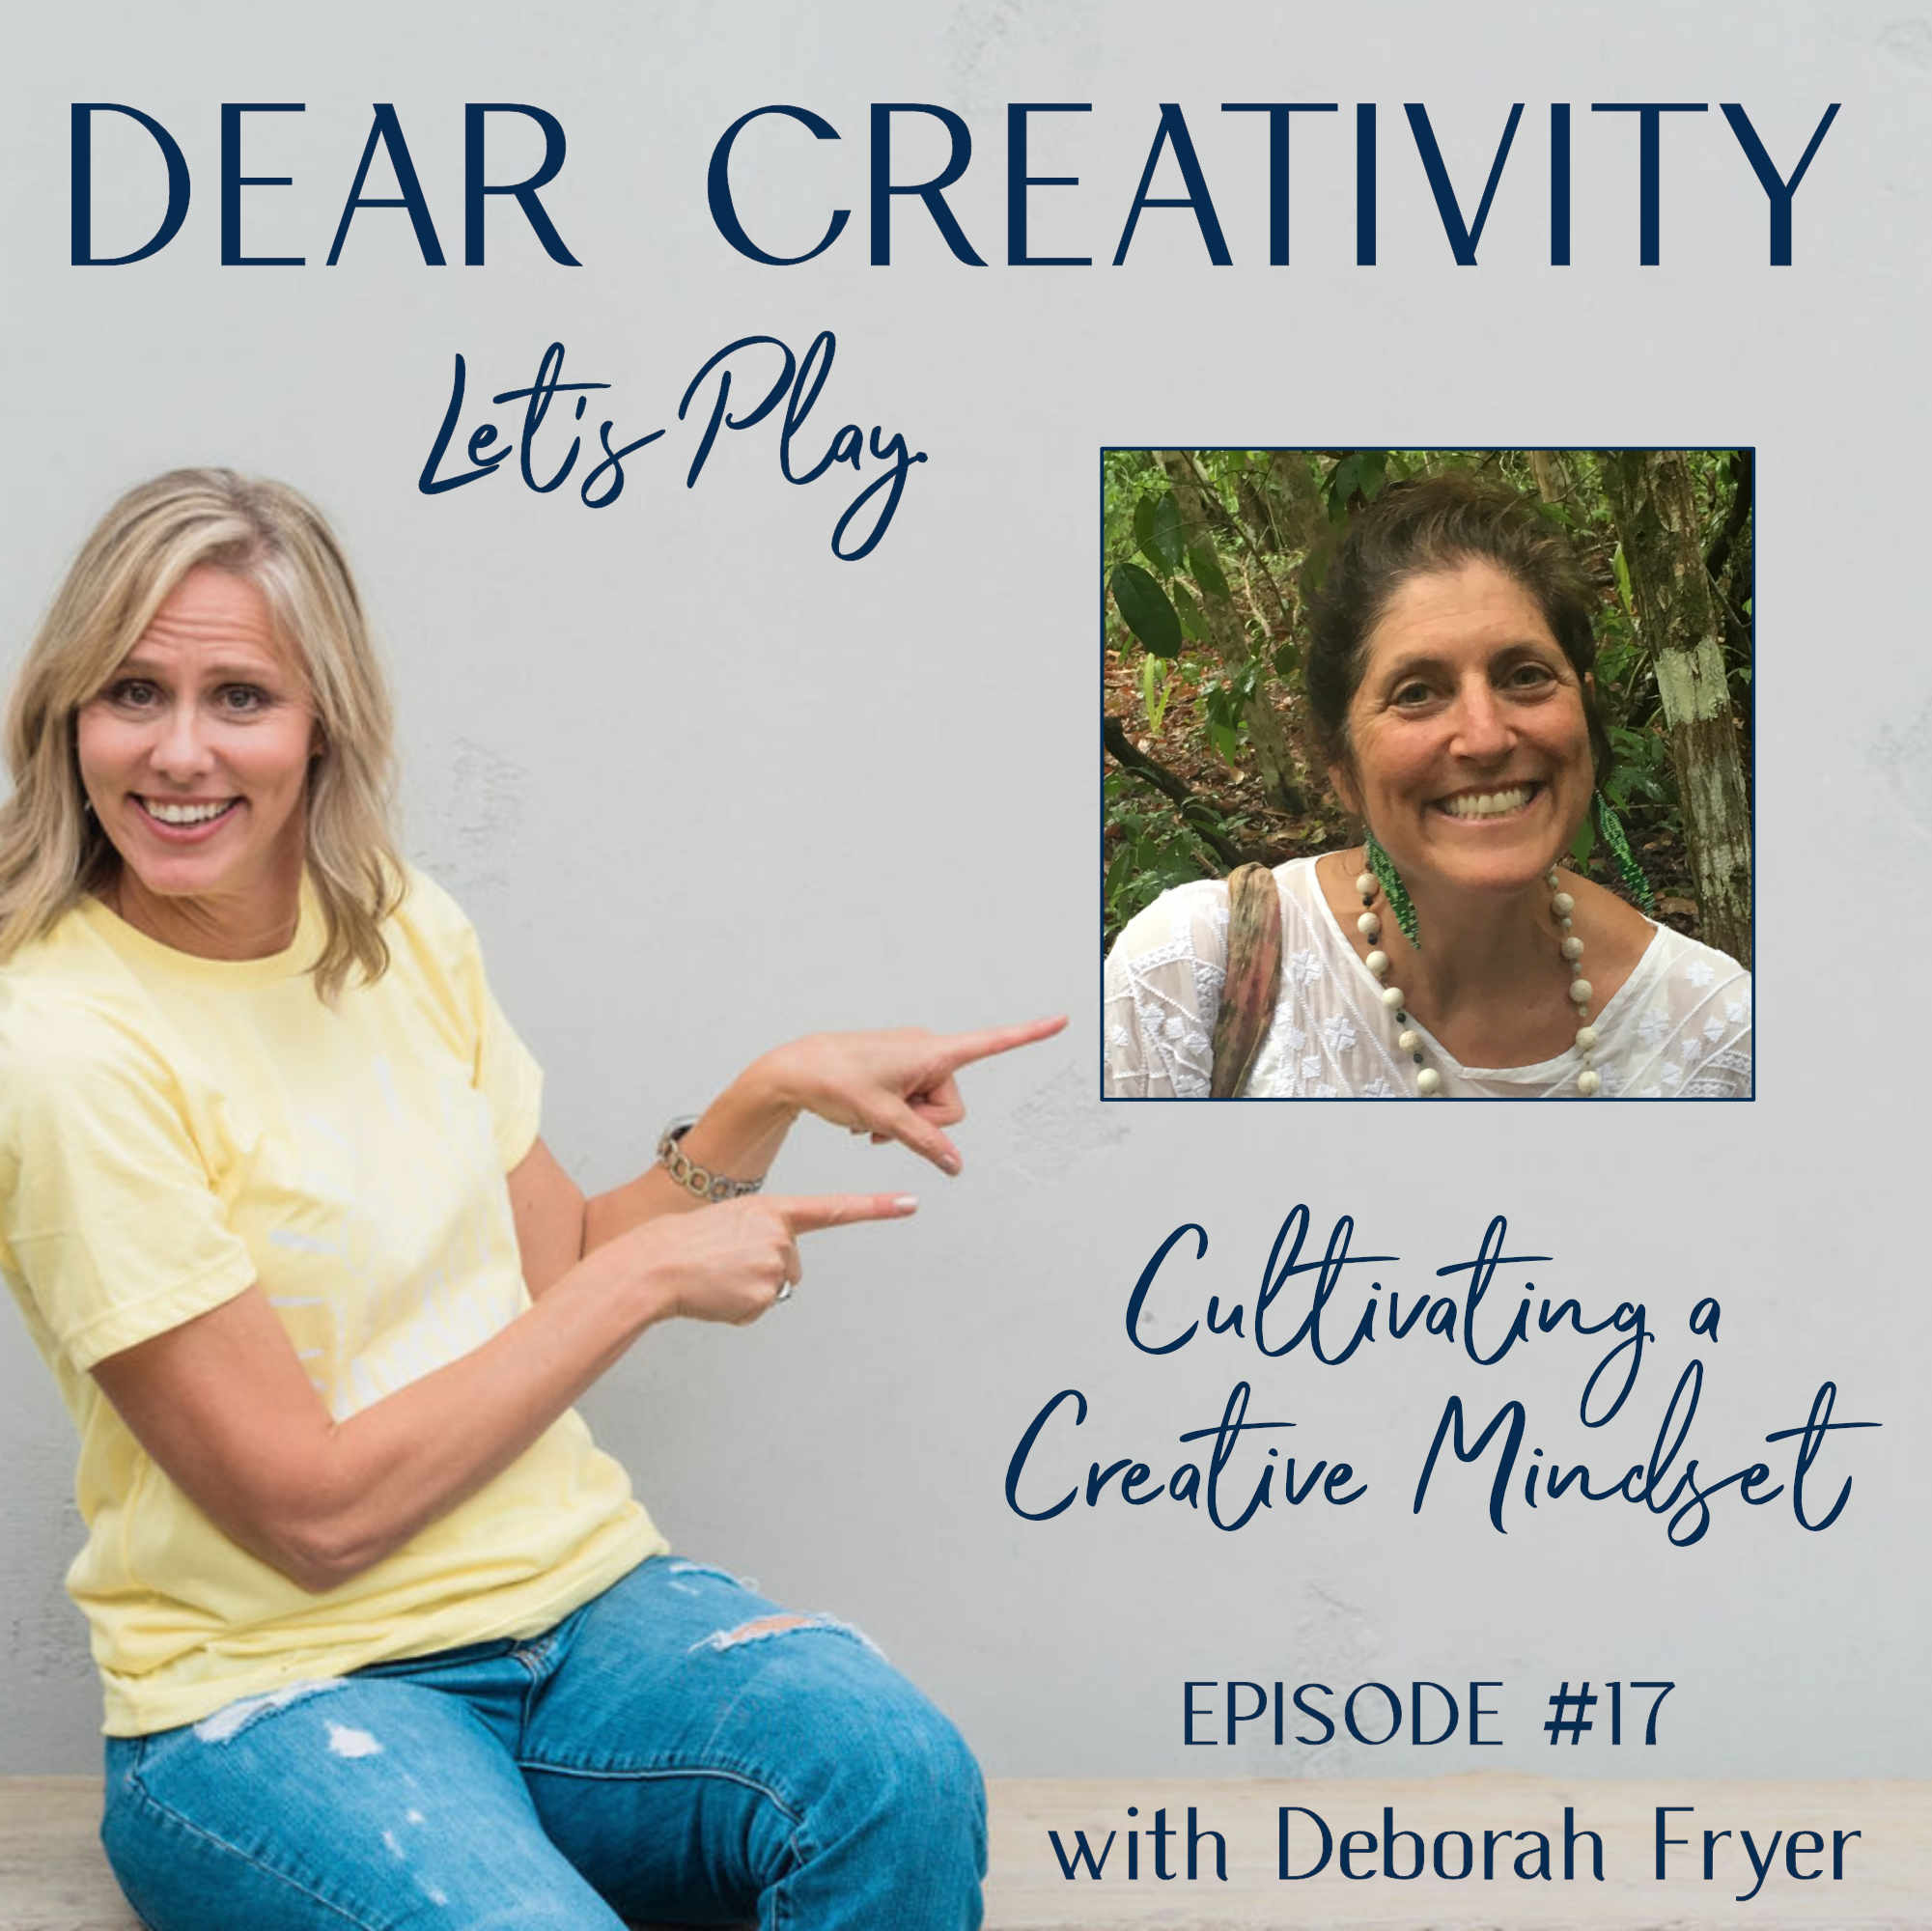 creative mindset episode graphic